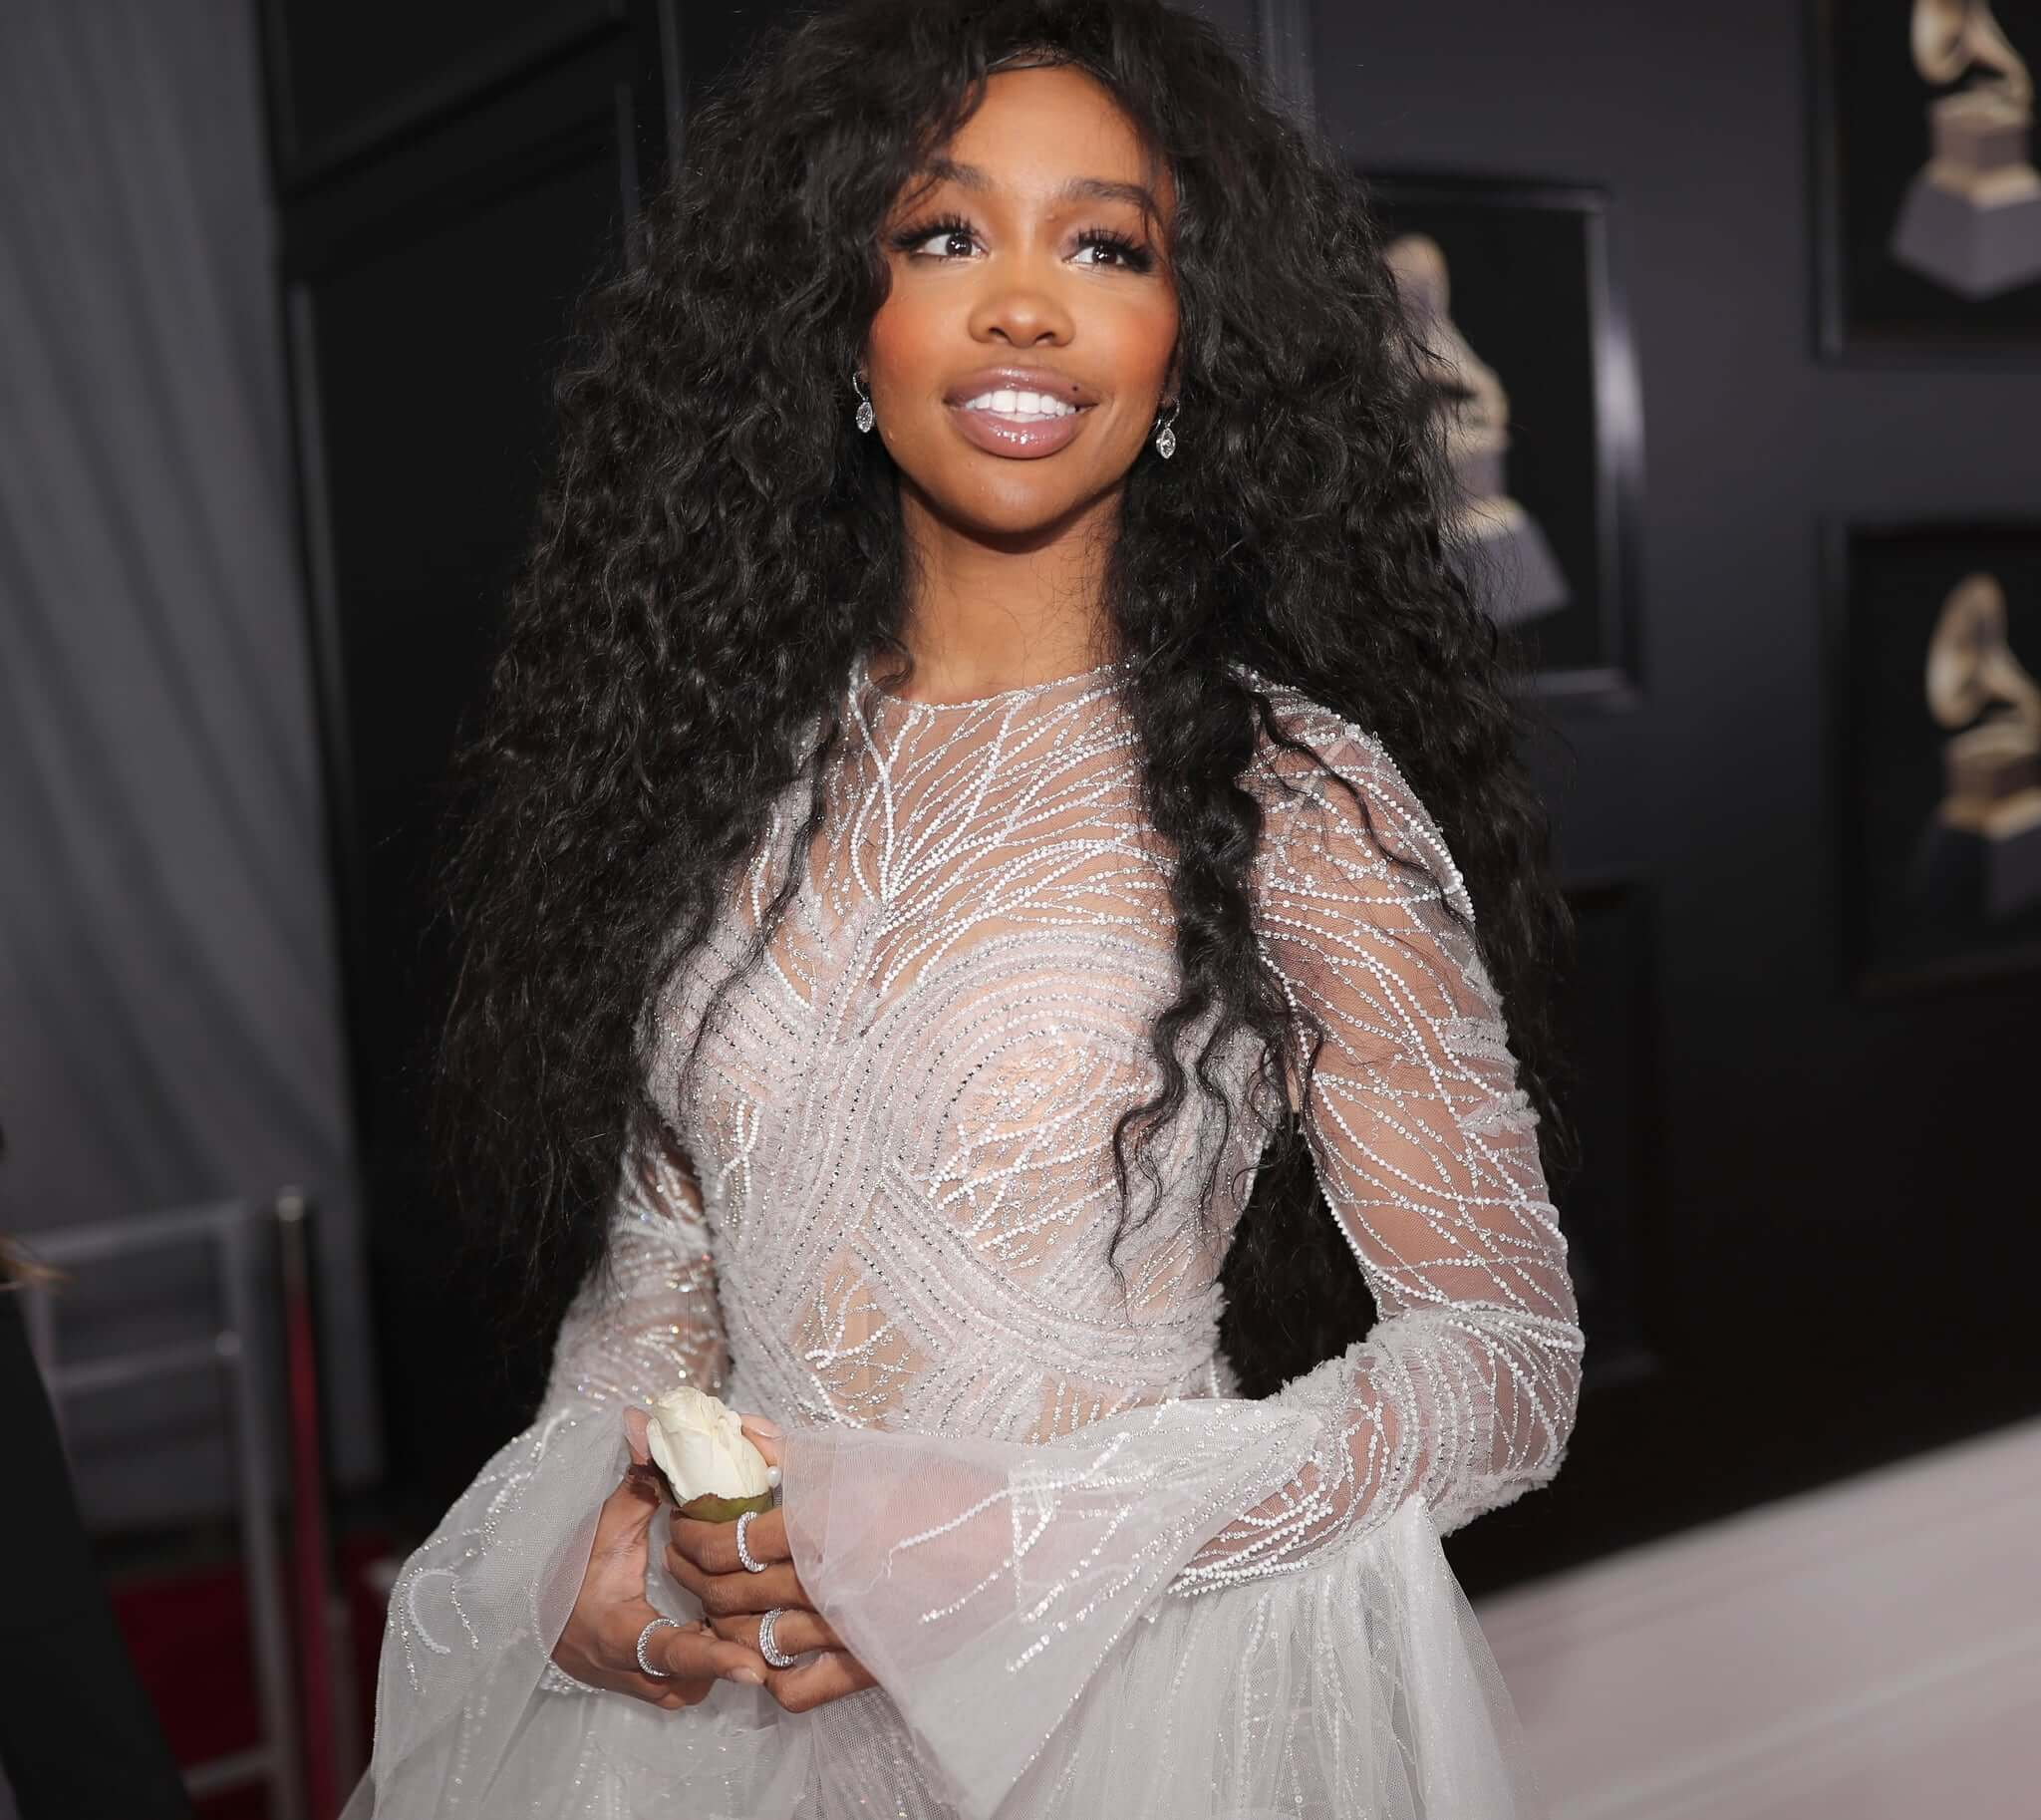 Sza hot busty pic